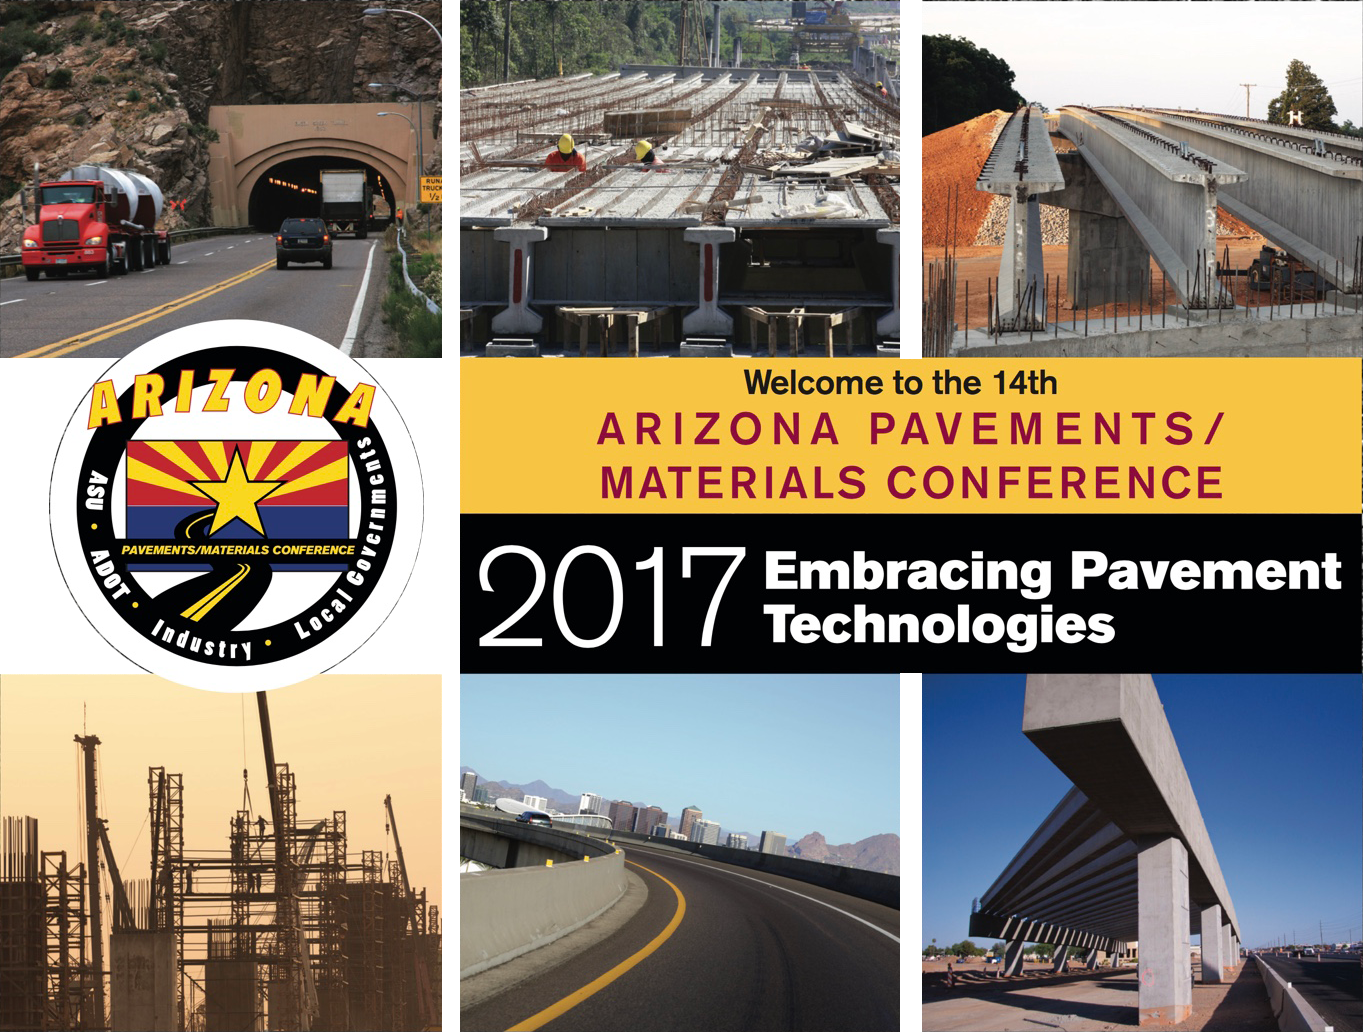 Welcome to the 14th Annaual Pavement/Materials Conference. The 2017 conference is entitled 'Embracing Pavement Technologies.'